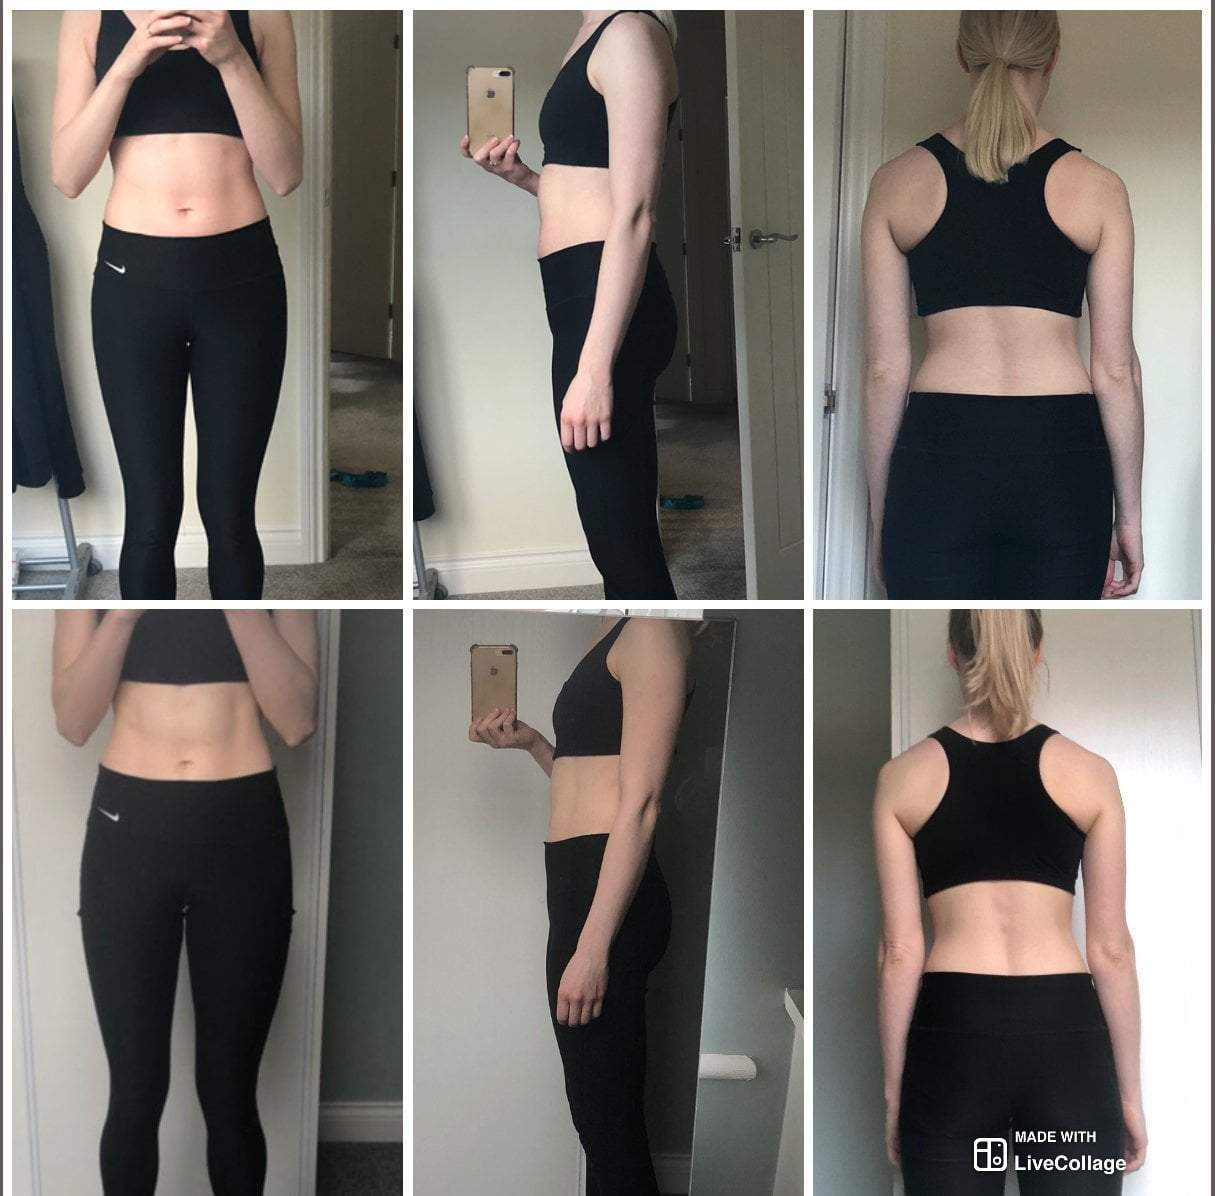 REAL RESULTS - Hannah McAliskey